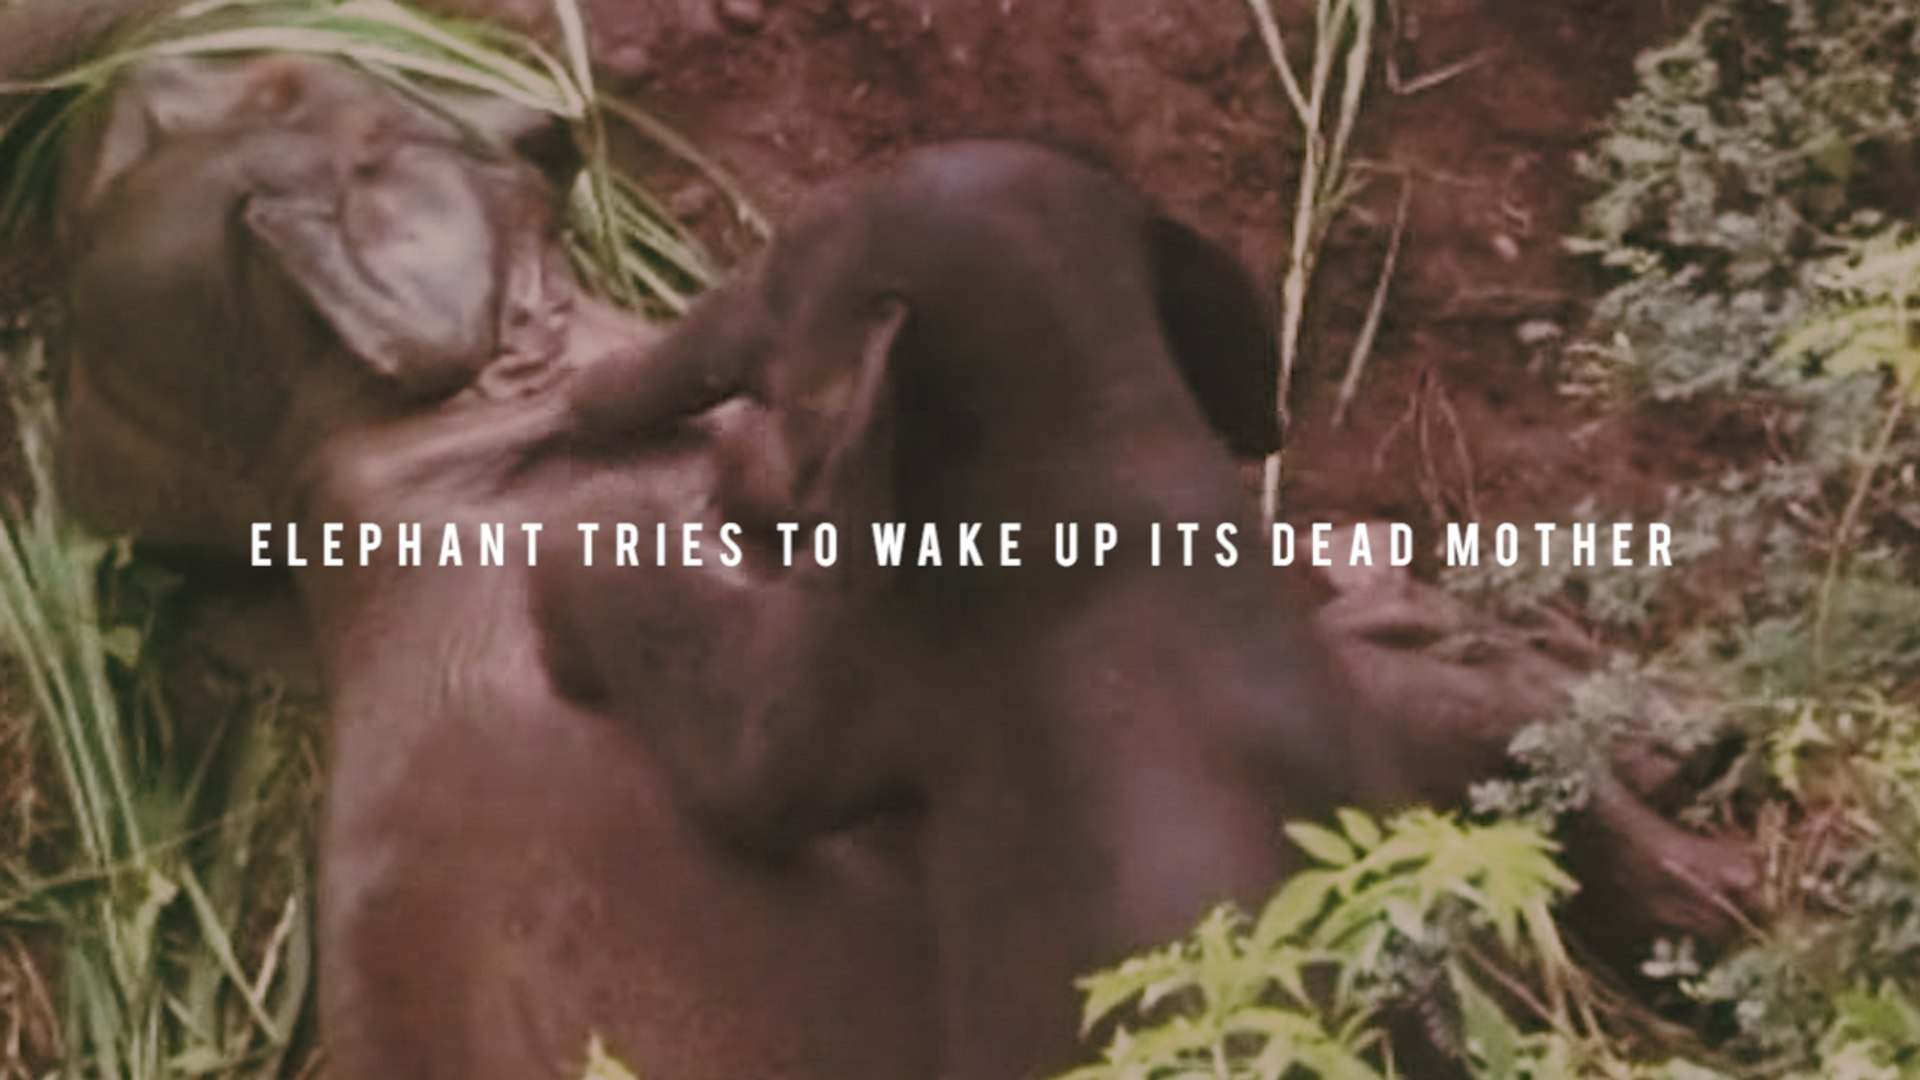 Heart-breaking footage of a baby elephant trying to wake up its dead mother